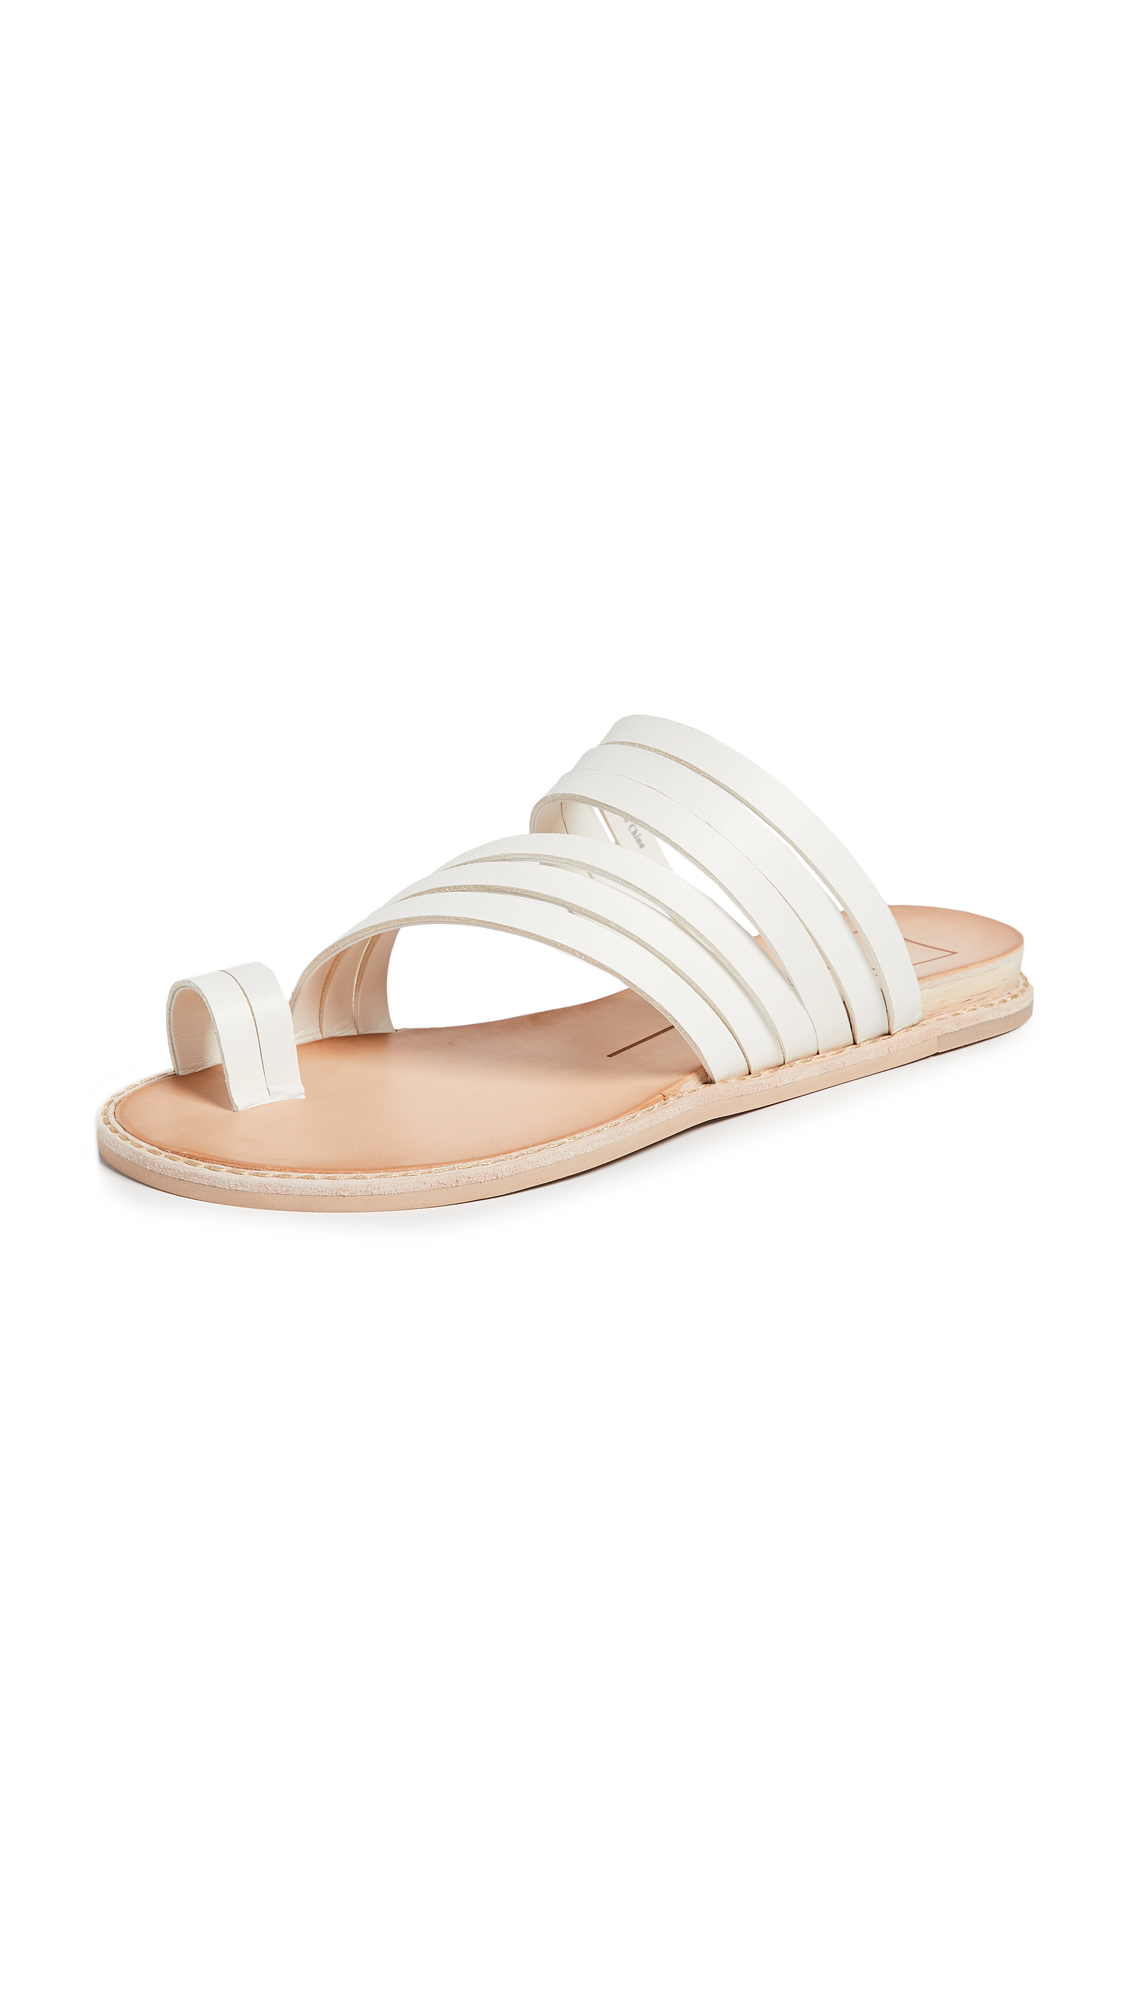 Dolce Vita Nelly Toe Ring Slides - Off White